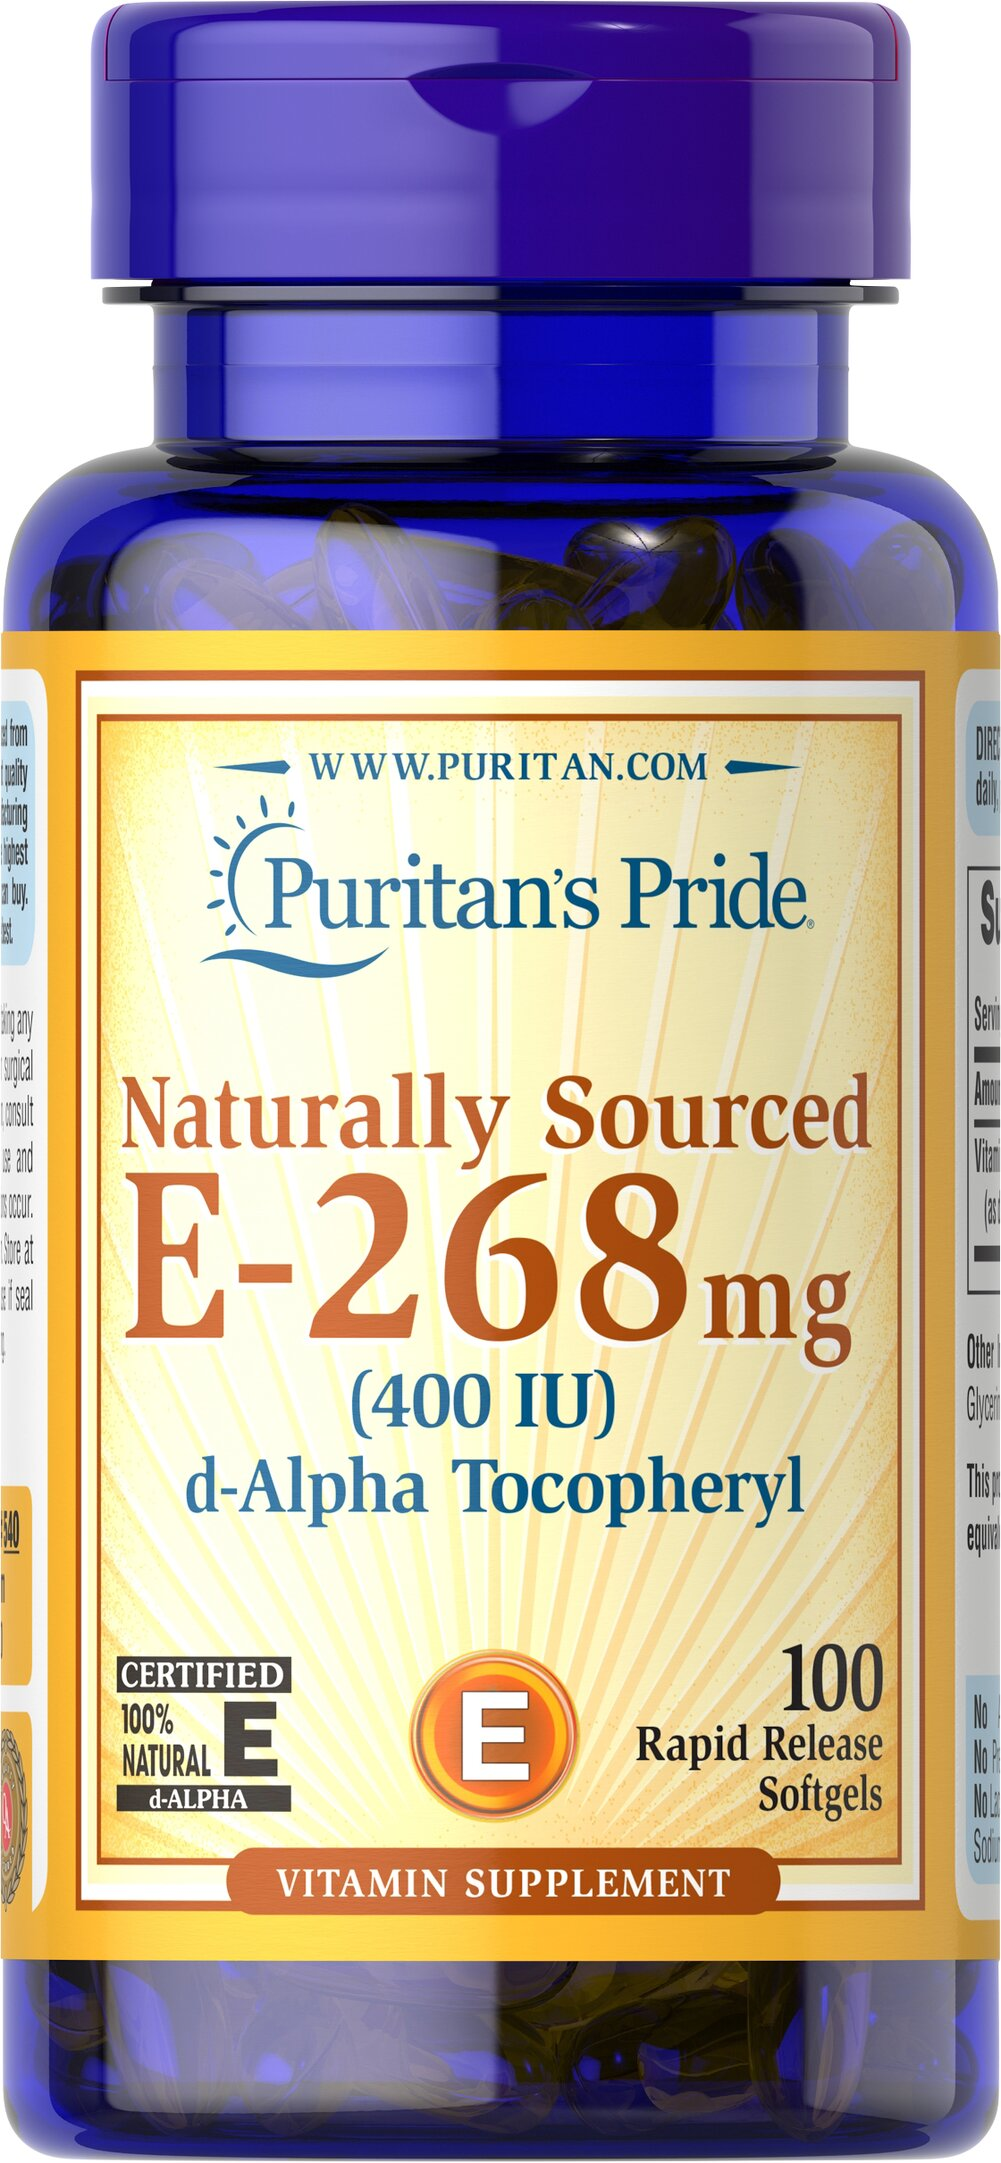 Vitamin E-400 iu 100% Natural <p><strong>Vitamin E</strong> is a potent antioxidant that helps fight free radicals.** Studies have shown that oxidative stress caused by free radicals may contribute to the premature aging of cells.** Vitamin E also promotes immune function and helps support cardiovascular health.** Our Vitamin E is 100% natural and comes in a convenient to use softgel.</p> 100 Softgels 400 IU $21.99